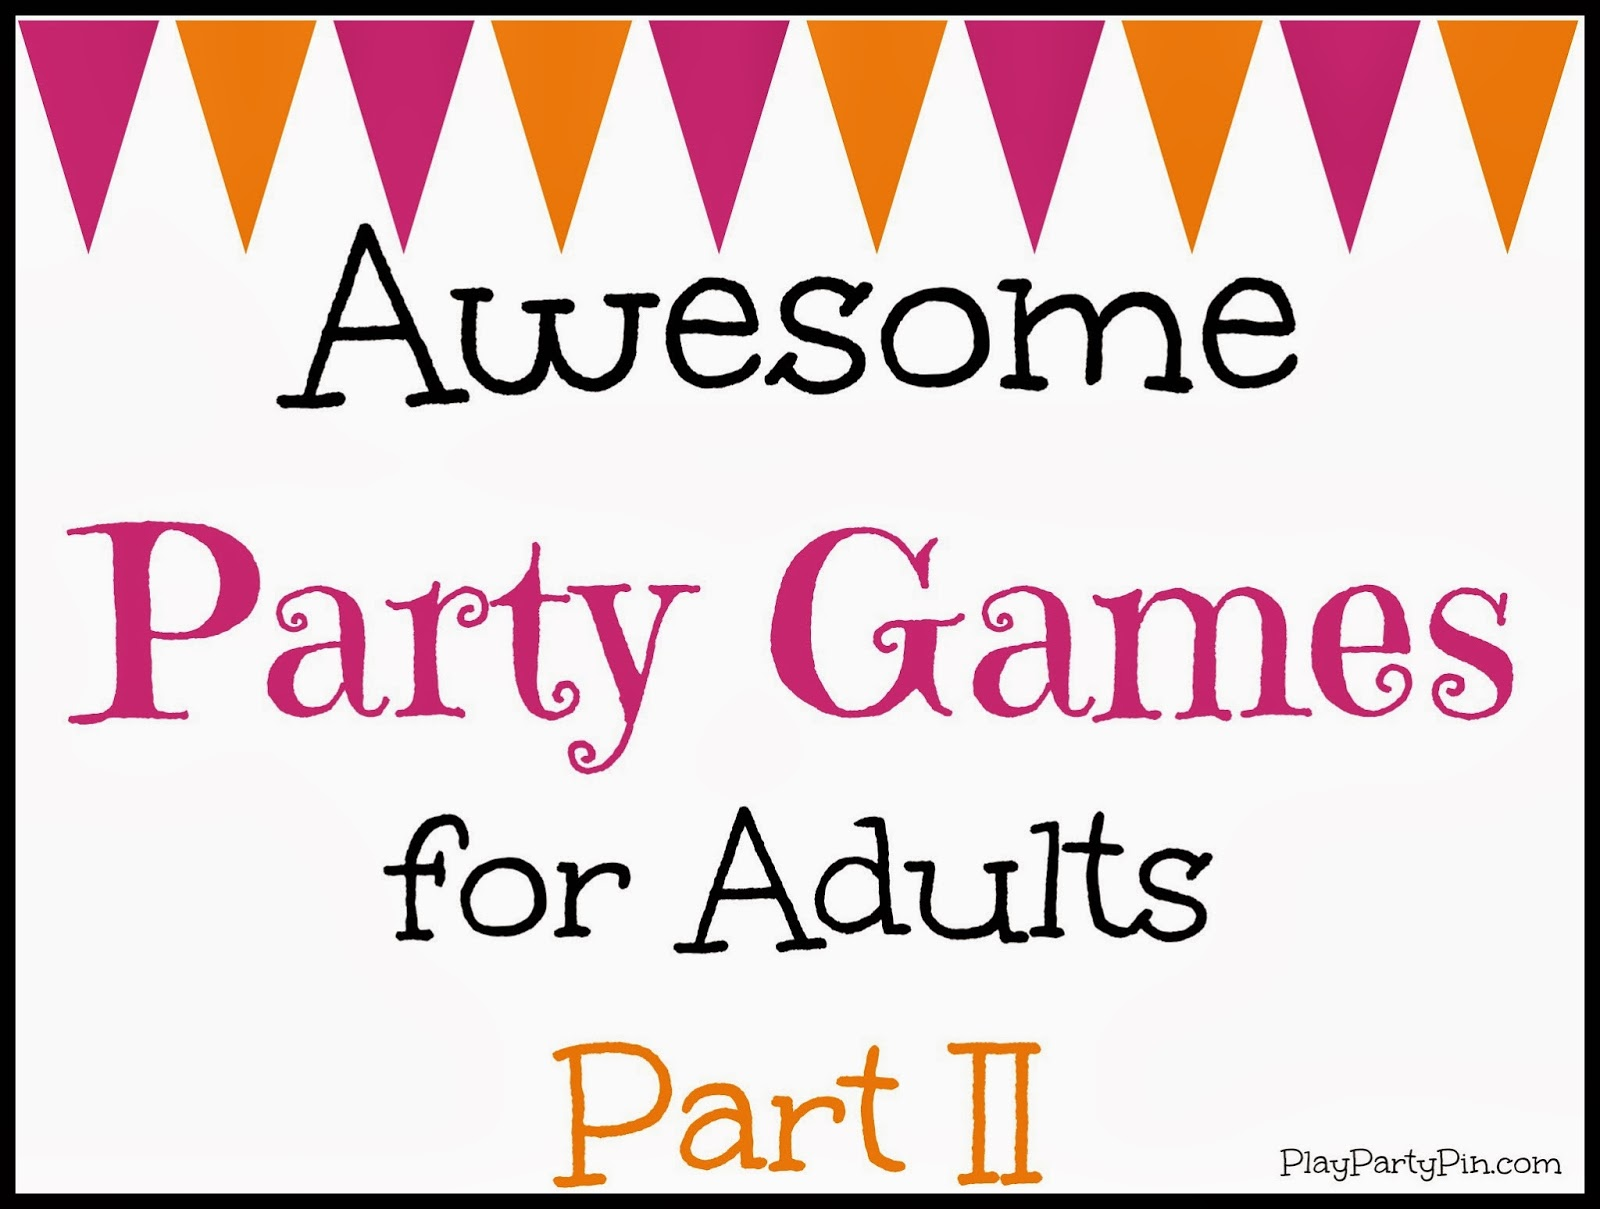 Awesome party games for adults part ii play party pin for Fun ideas for adults